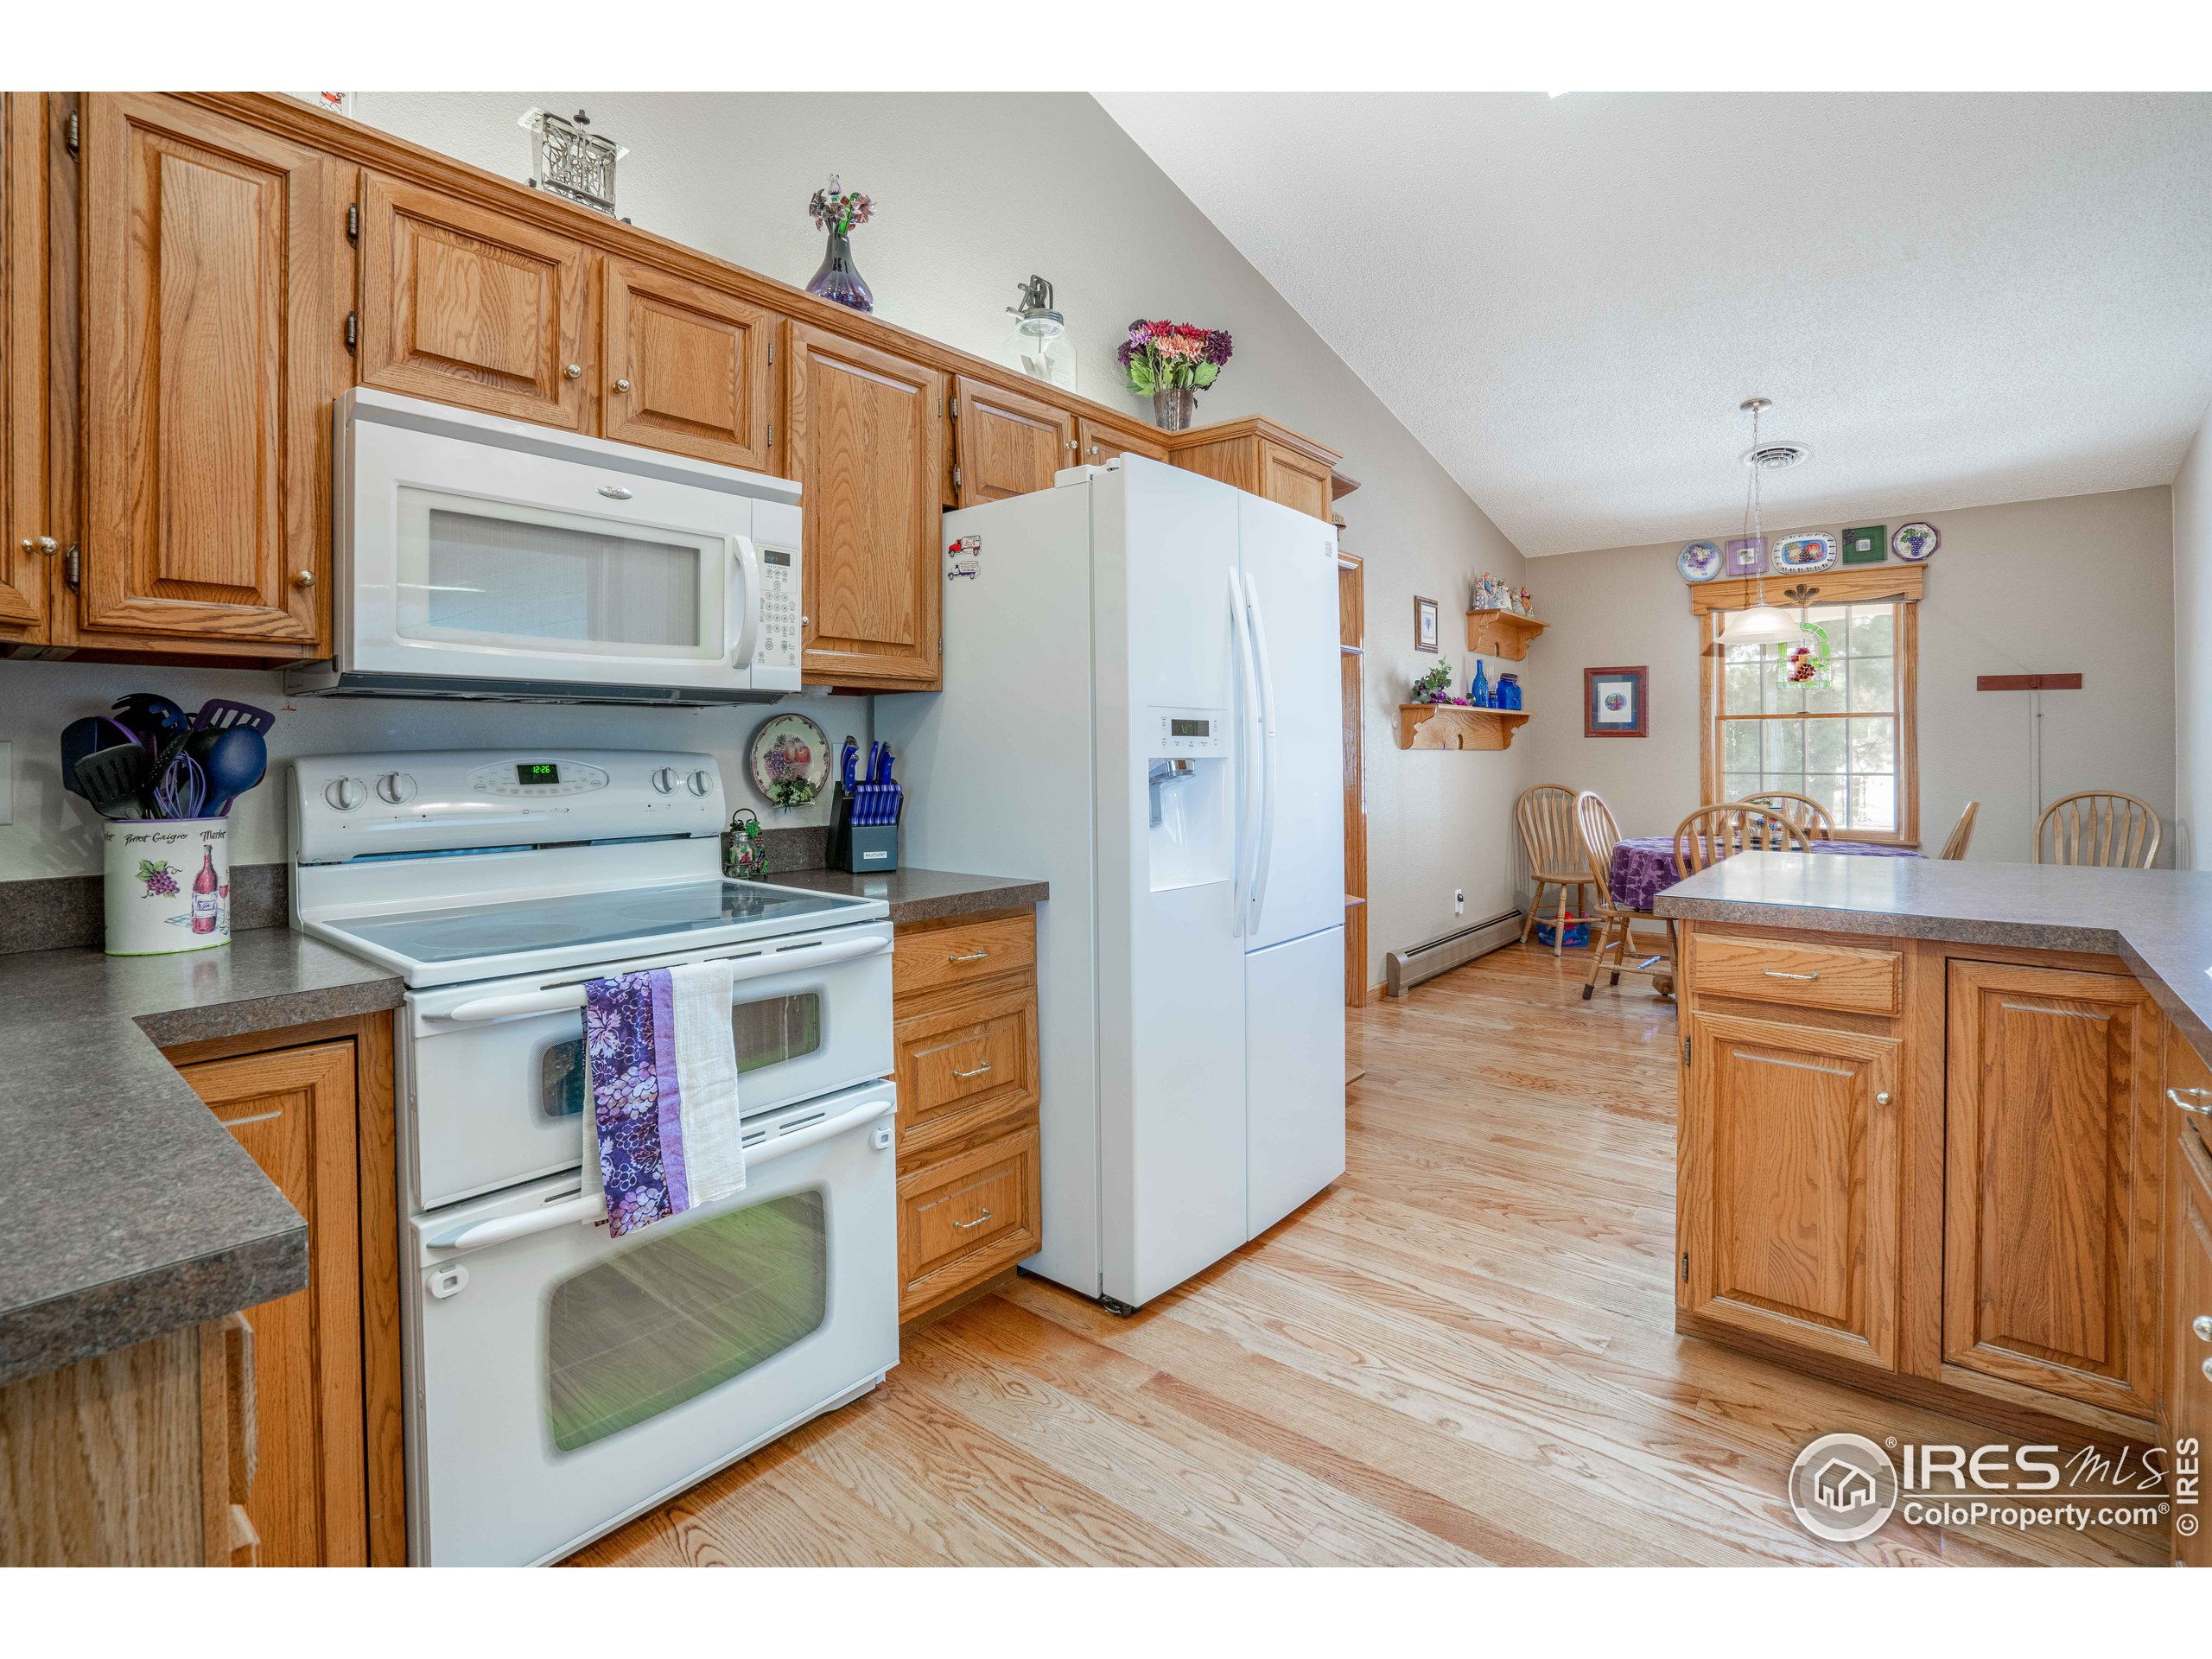 Double Oven, New Frig, Vaulted Ceiling!